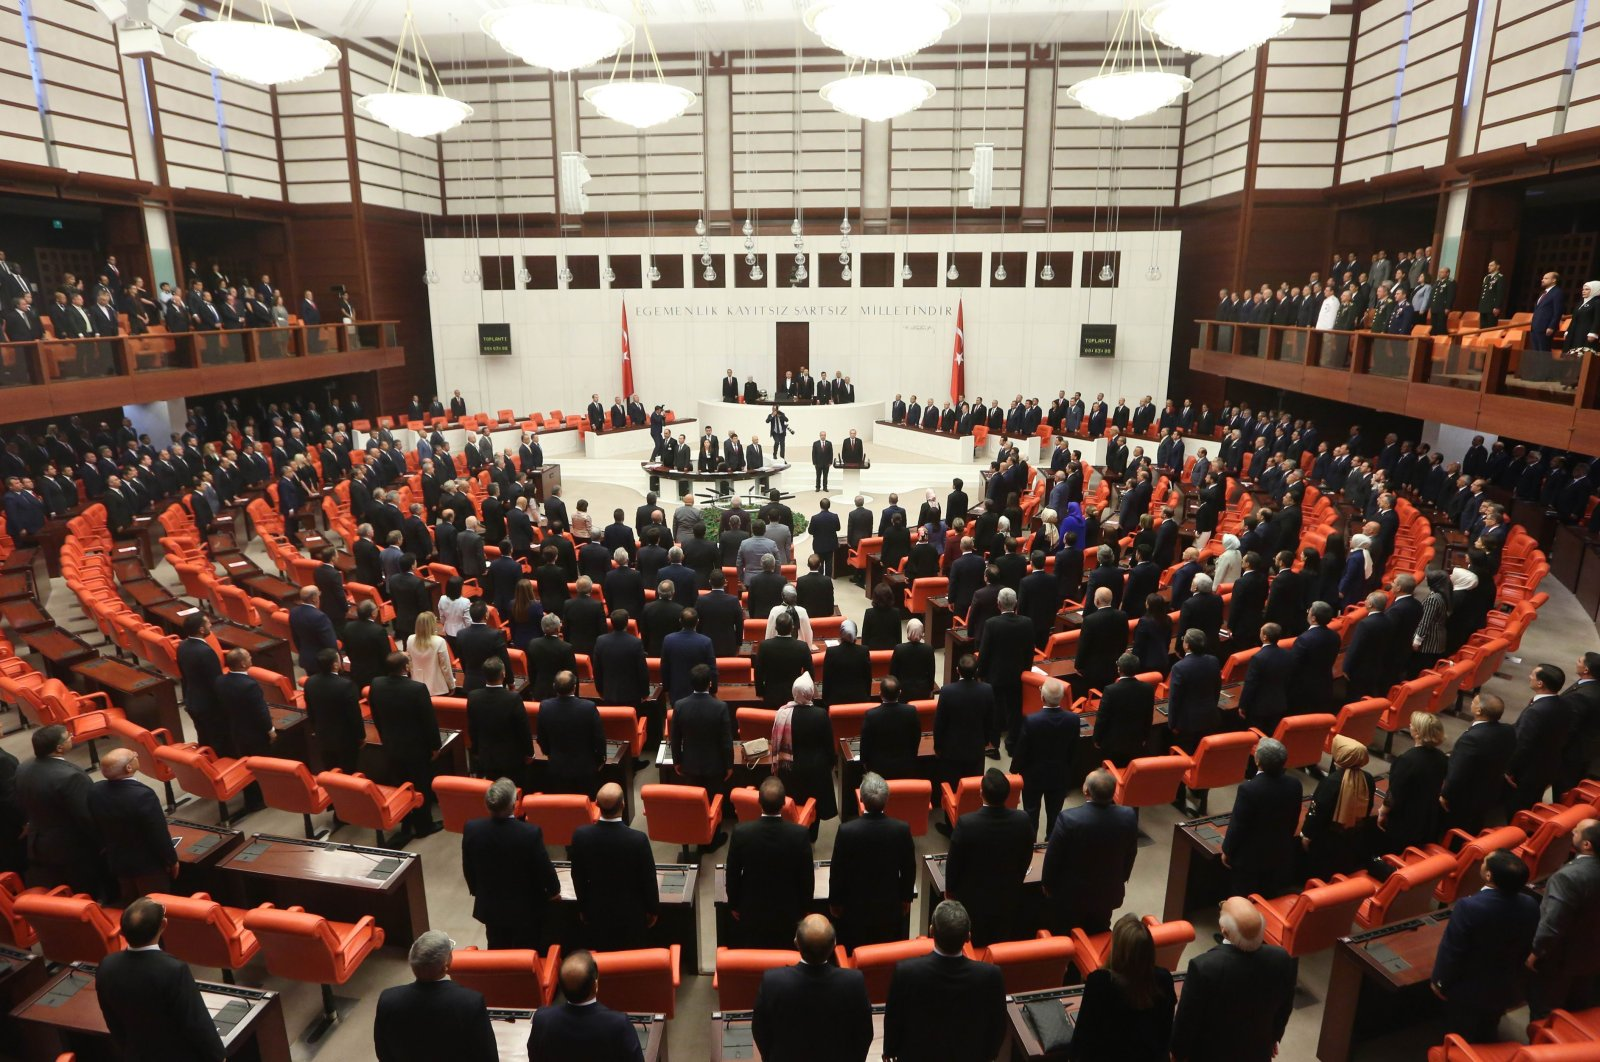 Turkish President Recep Tayyip Erdoğan (C) takes an oath of office before lawmakers under a new system of government at the Grand National Assembly of Turkey in Ankara, Turkey, on Monday, July 9, 2018. (Getty Images)